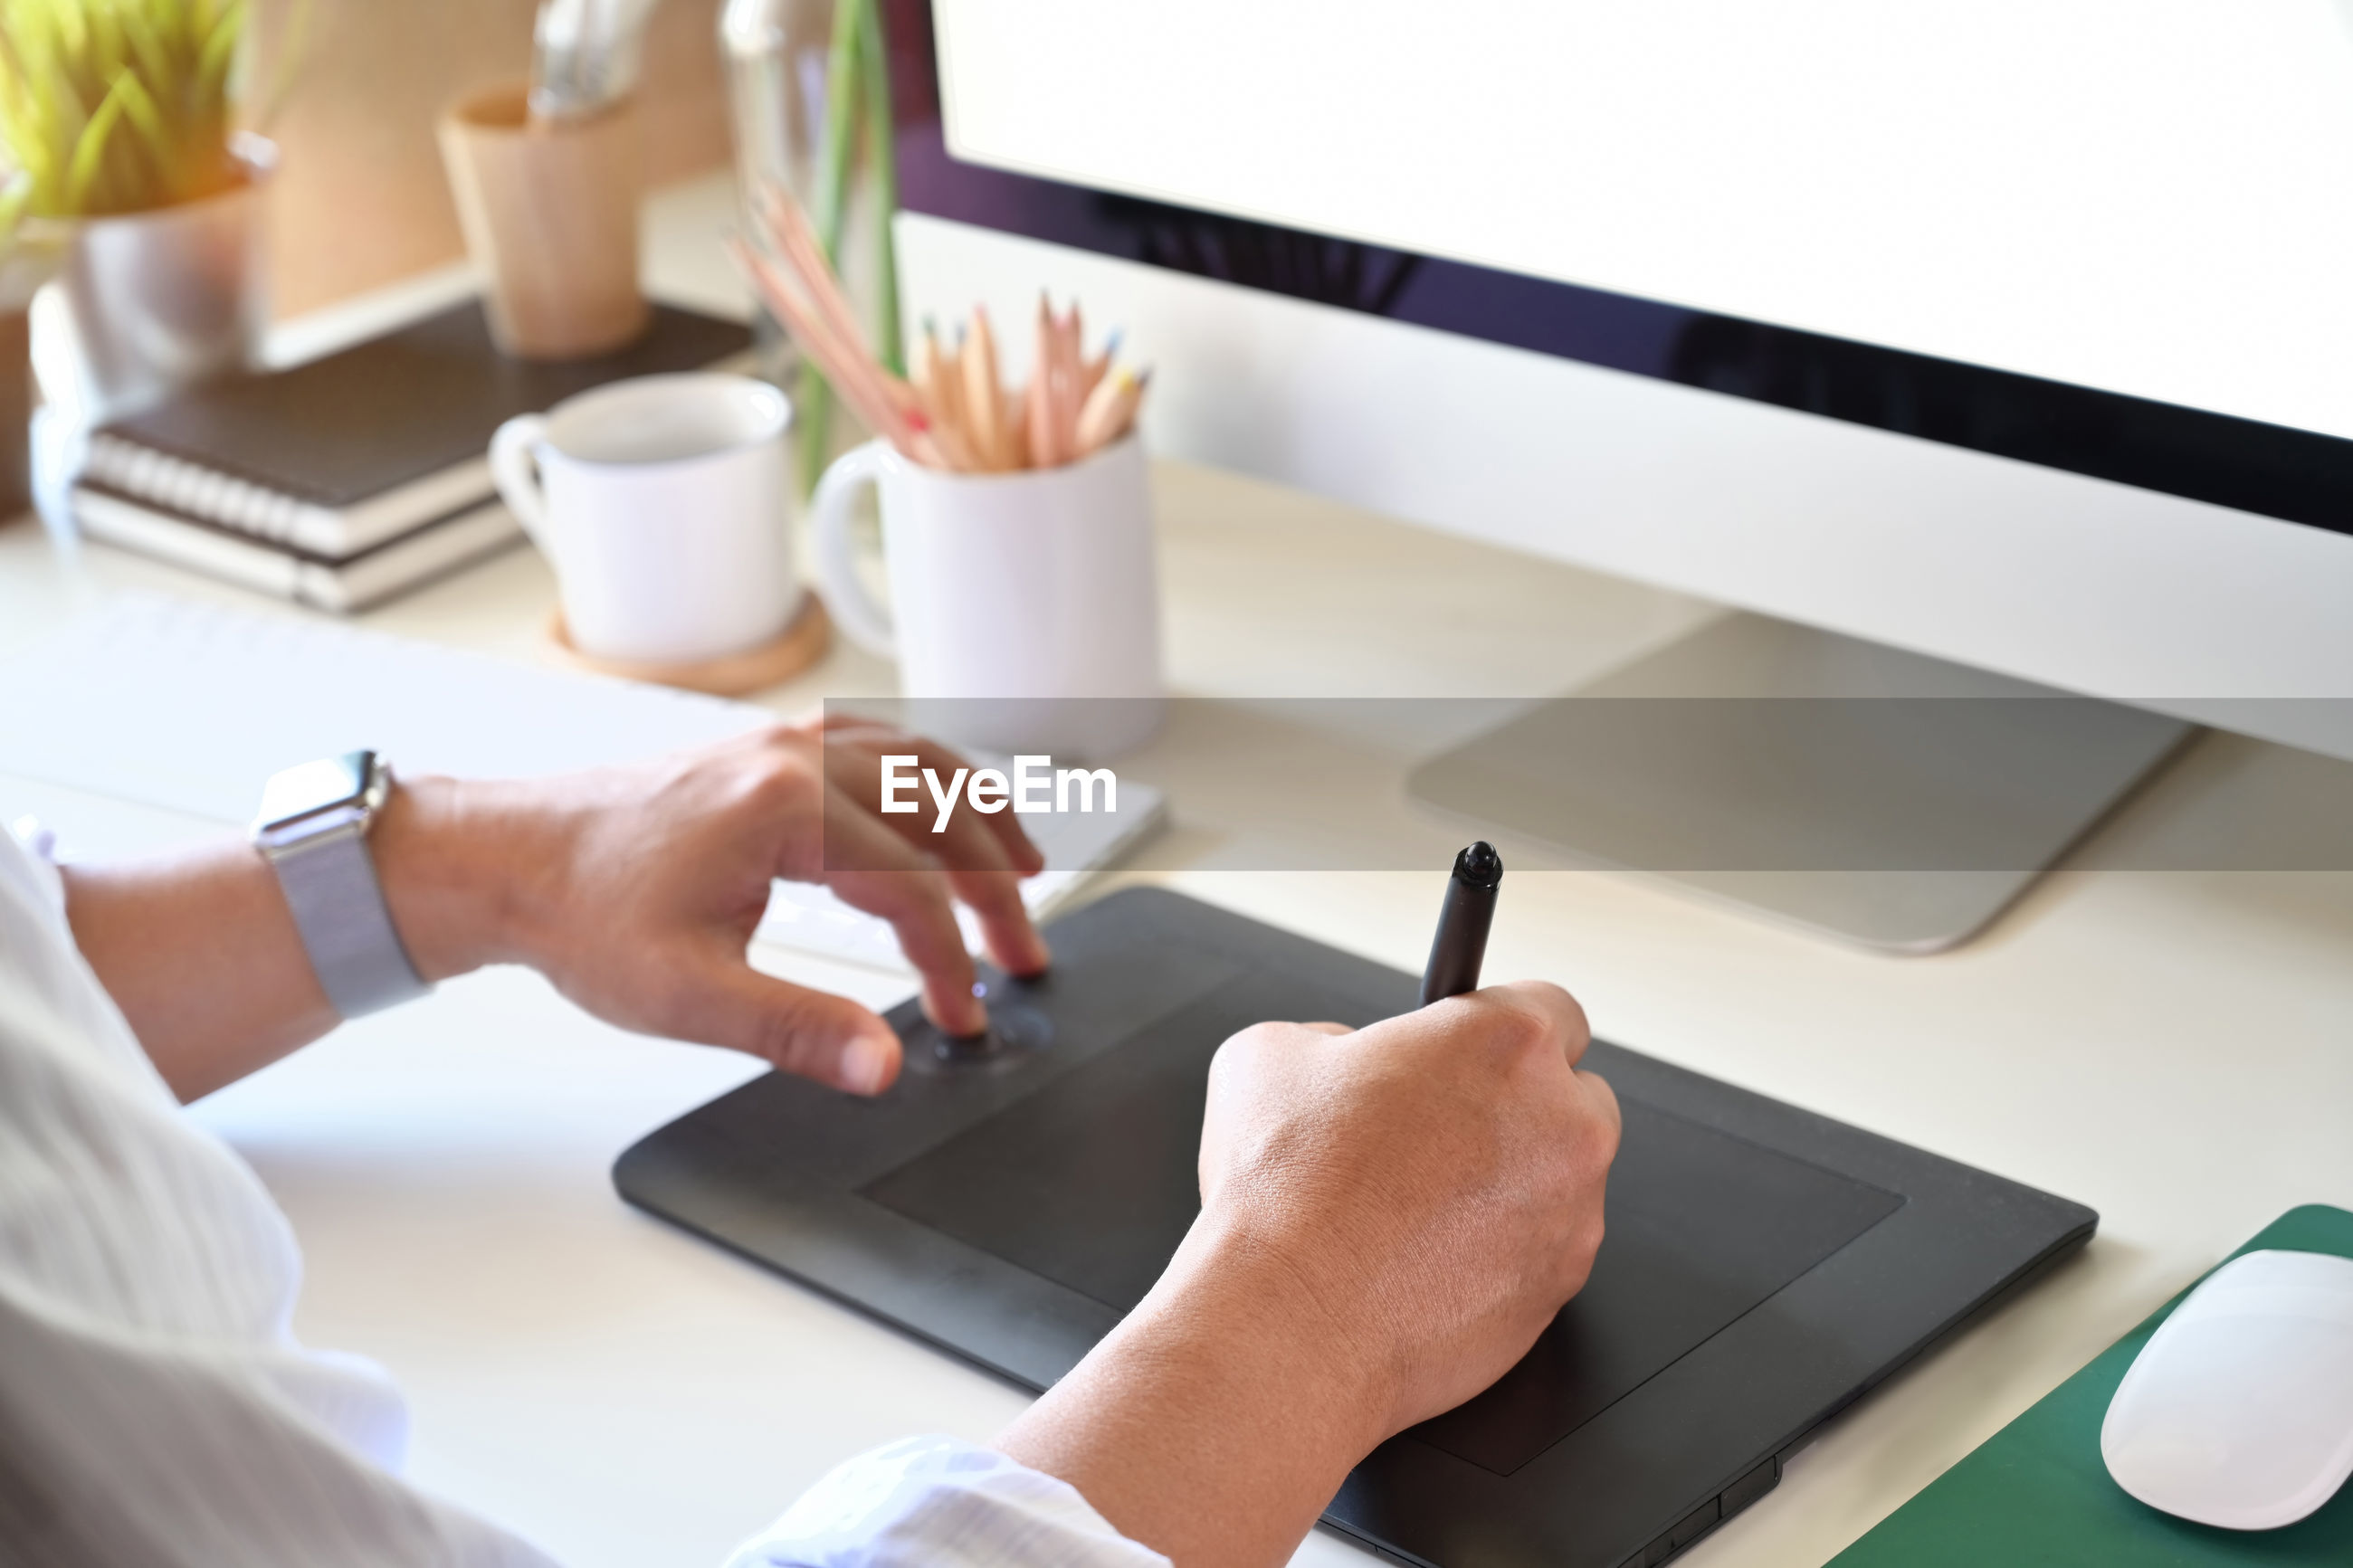 Cropped hands of man using graphics tablet on table